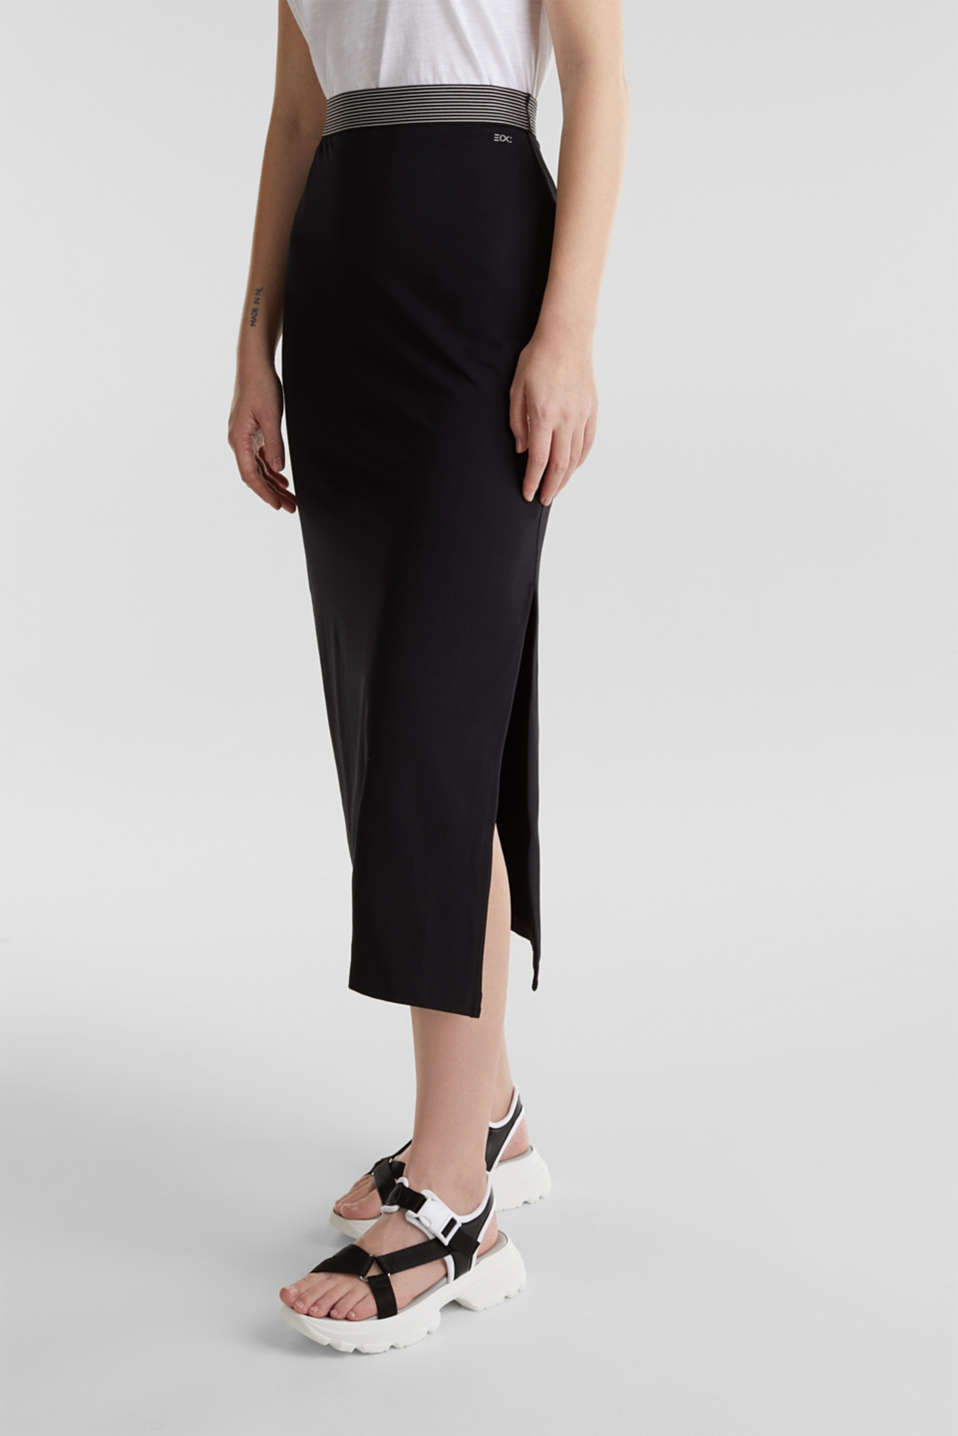 edc - Midi skirt in stretch jersey